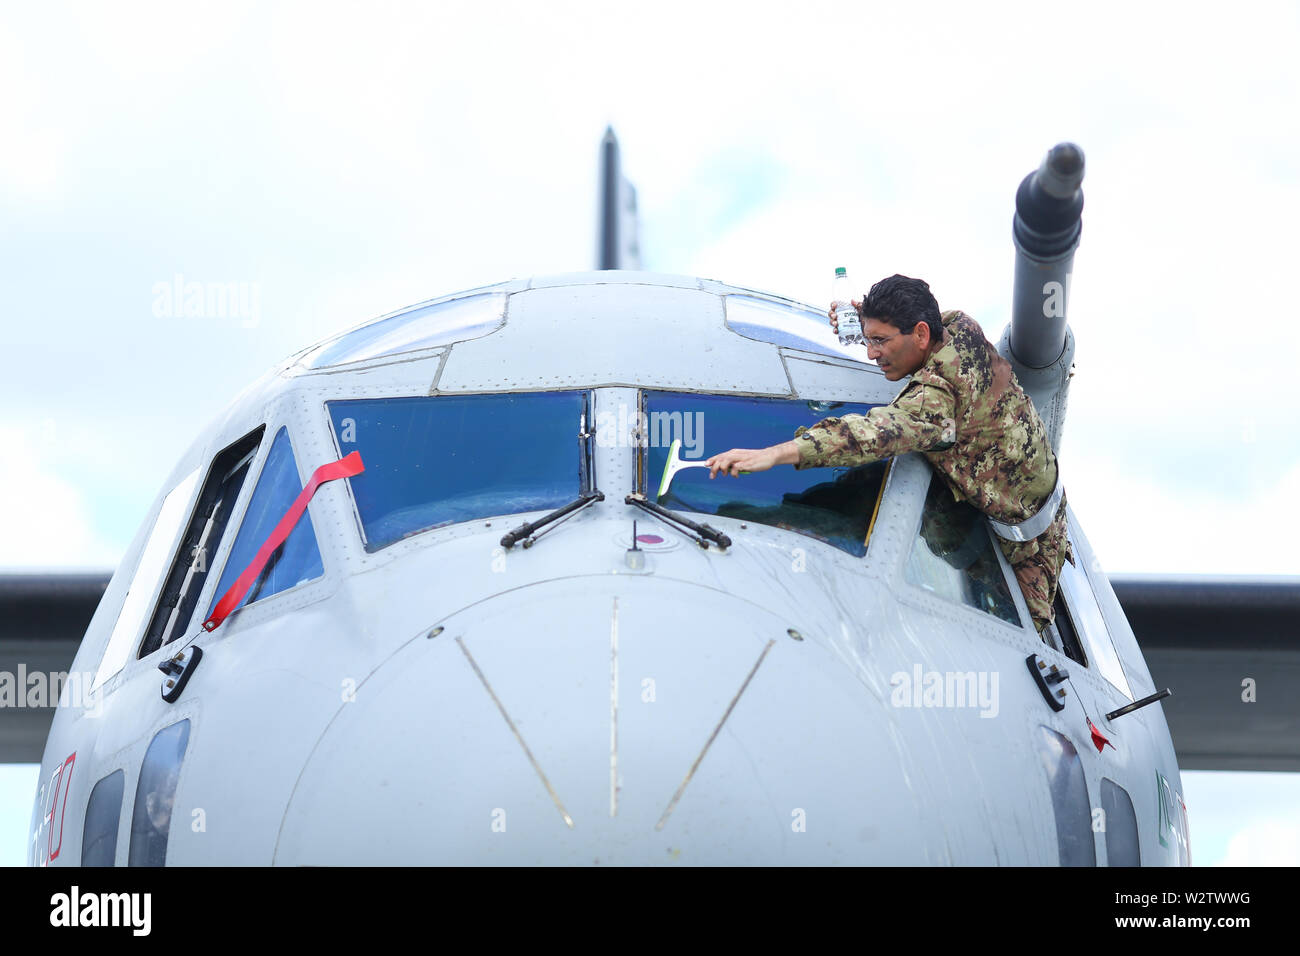 Otopeni, Romania - May 22, 2019: A military pilot of an Alenia C-27J Spartan military cargo plane from the Italian Air Force is cleaning the windscree Stock Photo